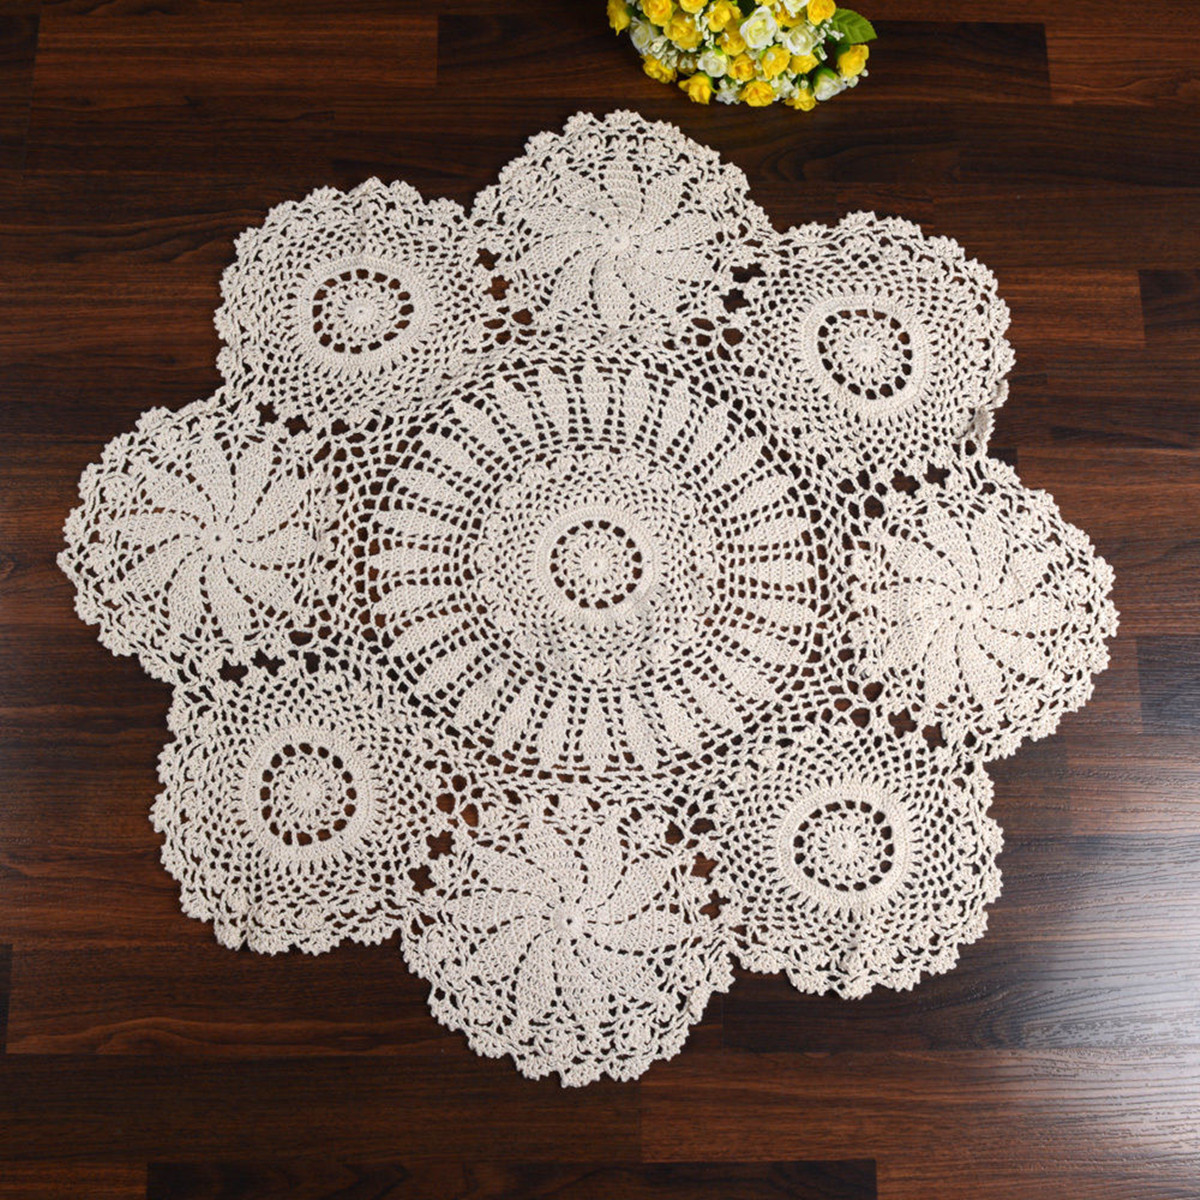 Cloth Lace Doilies Unique Hand Crocheted Cotton Yarn Round Lace Doily Mat Vintage Of Top 48 Pics Cloth Lace Doilies